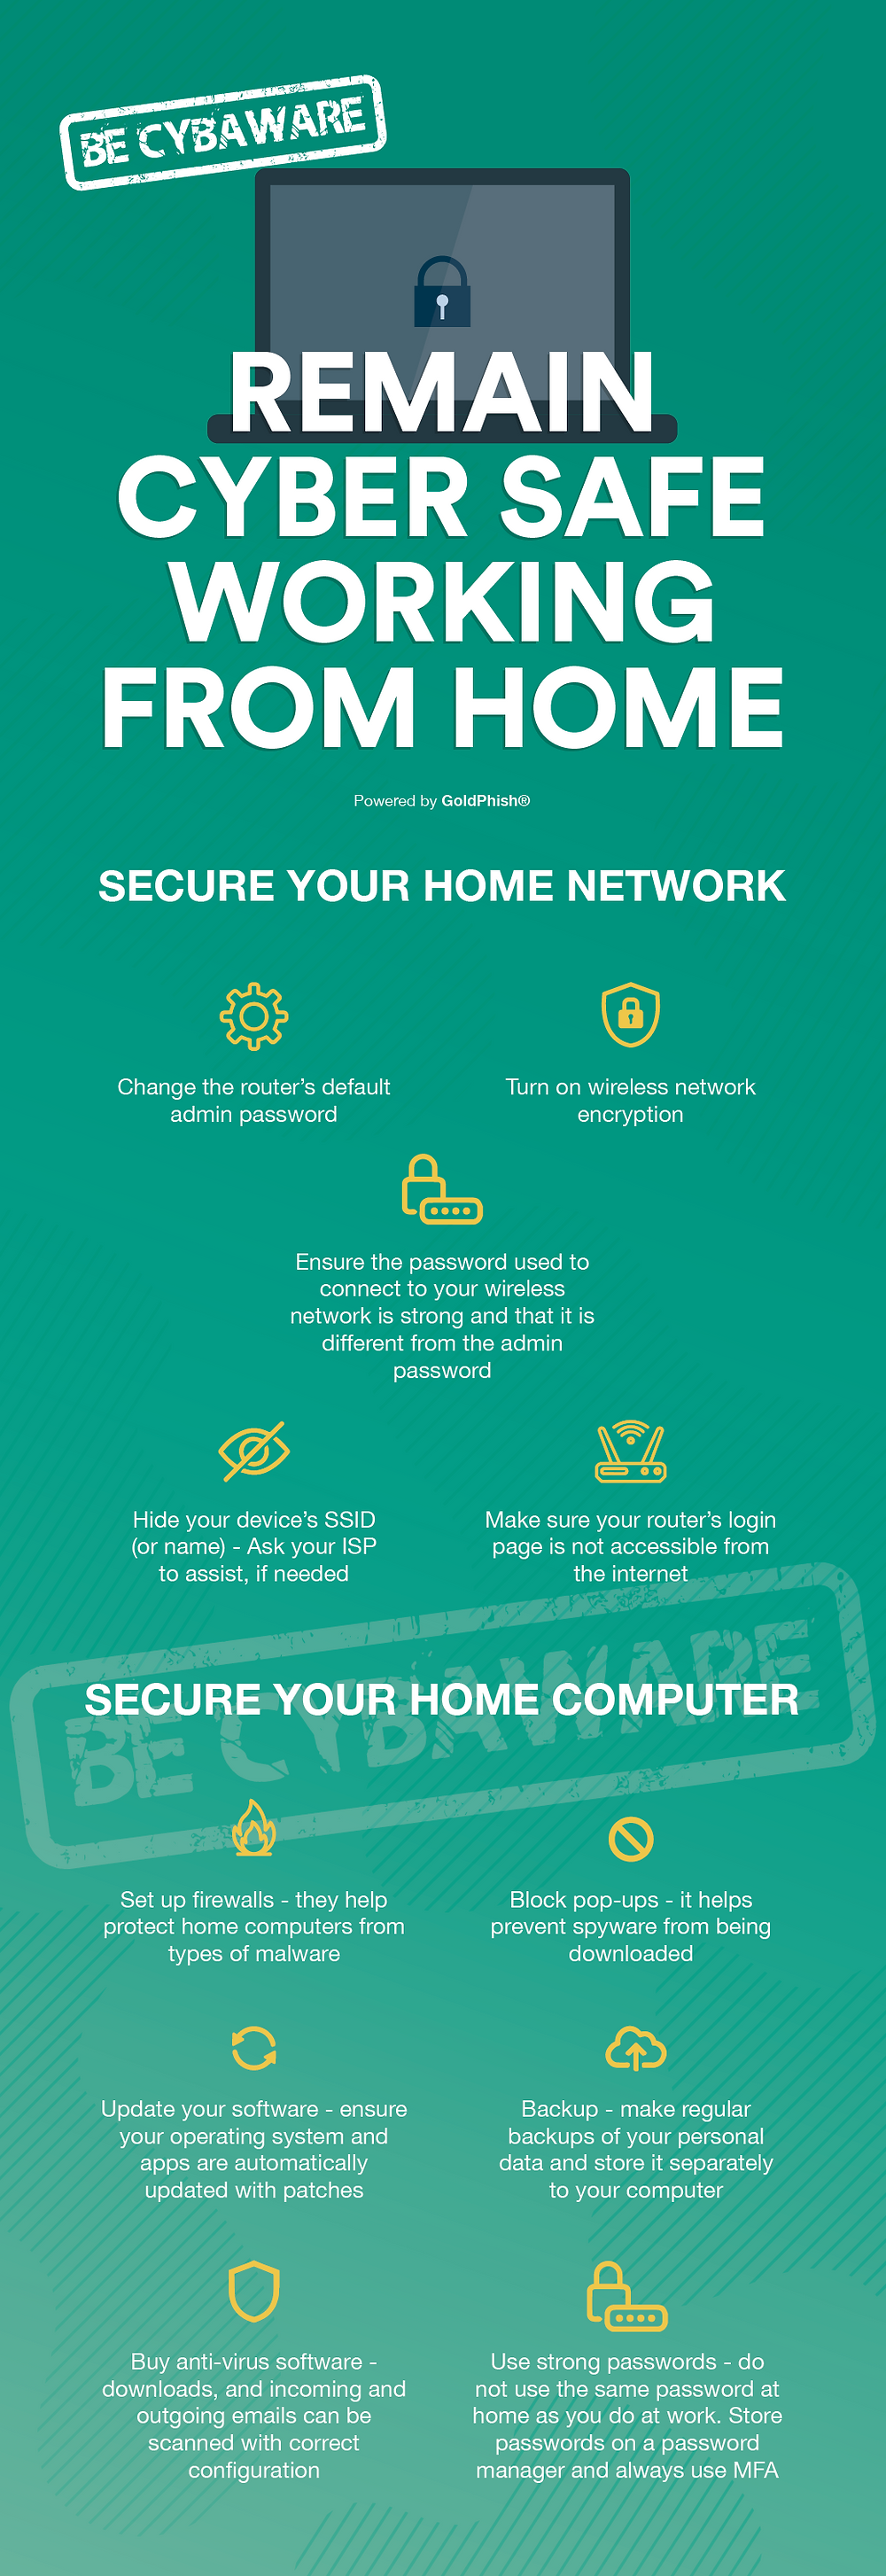 Remain cyber safe working from home